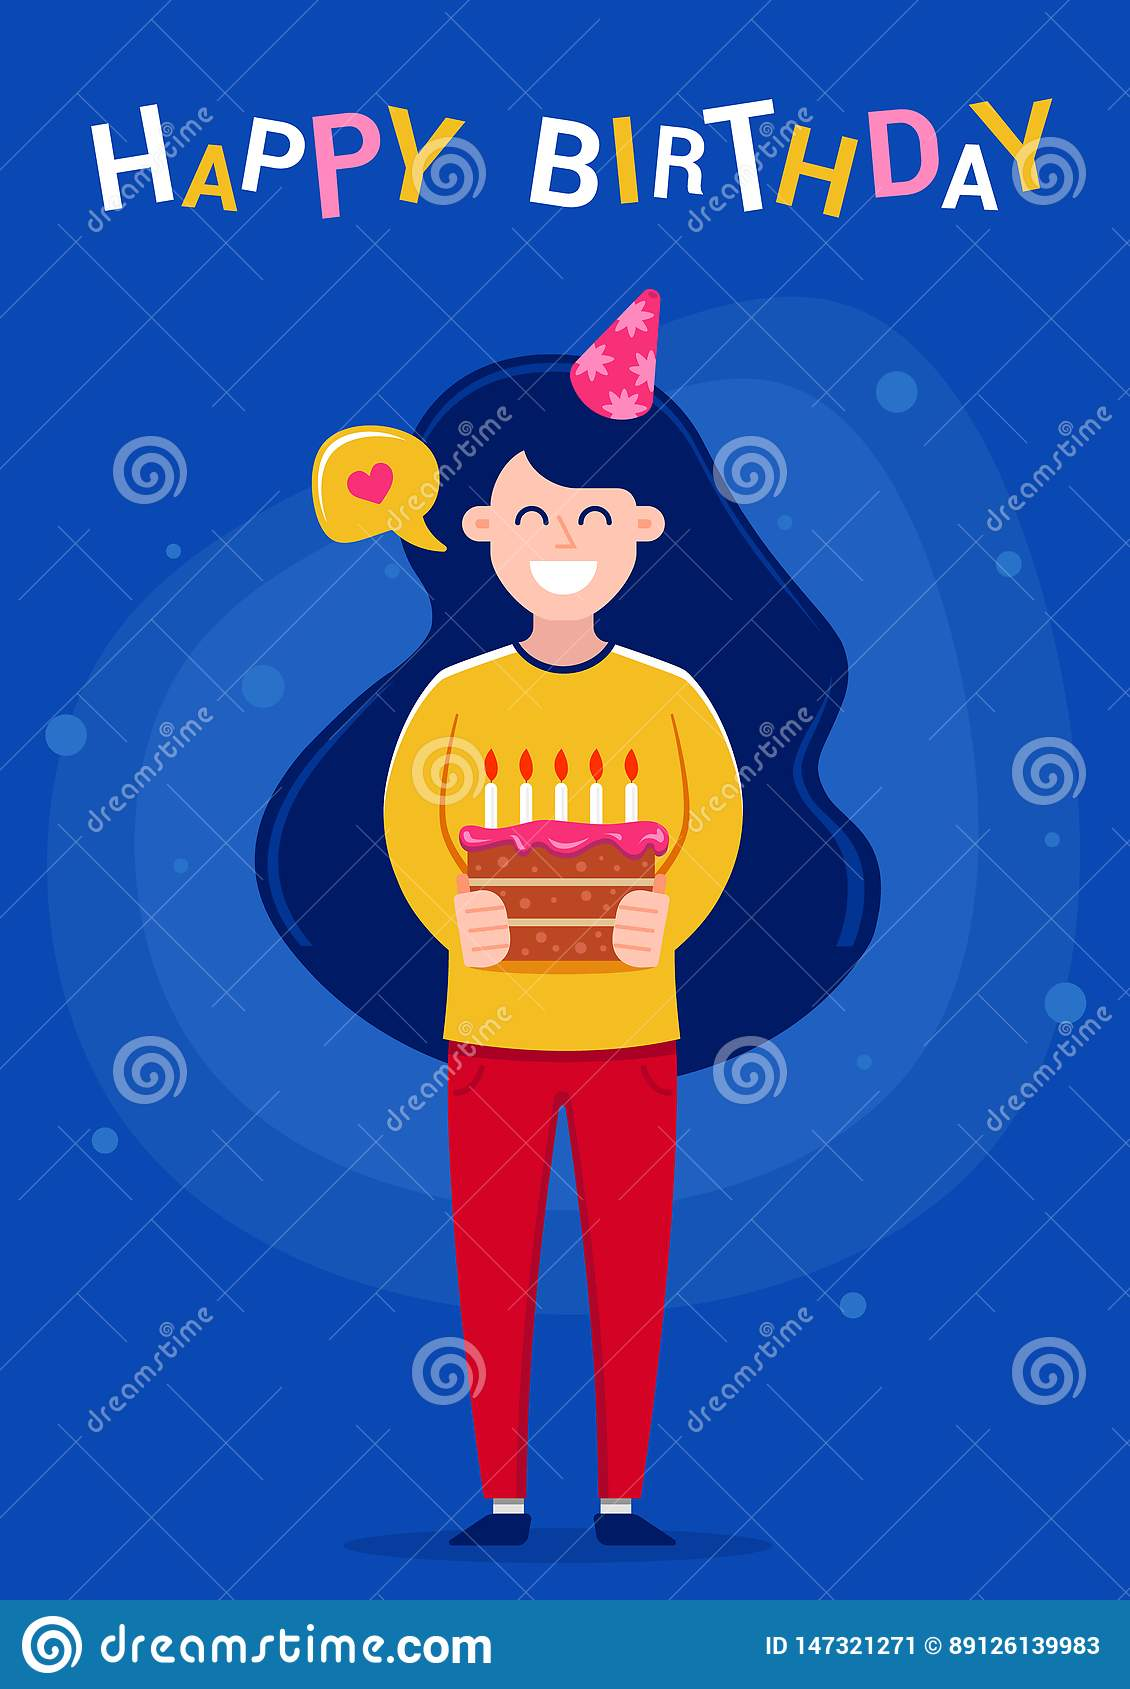 Happy Birthday greeting card. Girl holding a cake with candles.